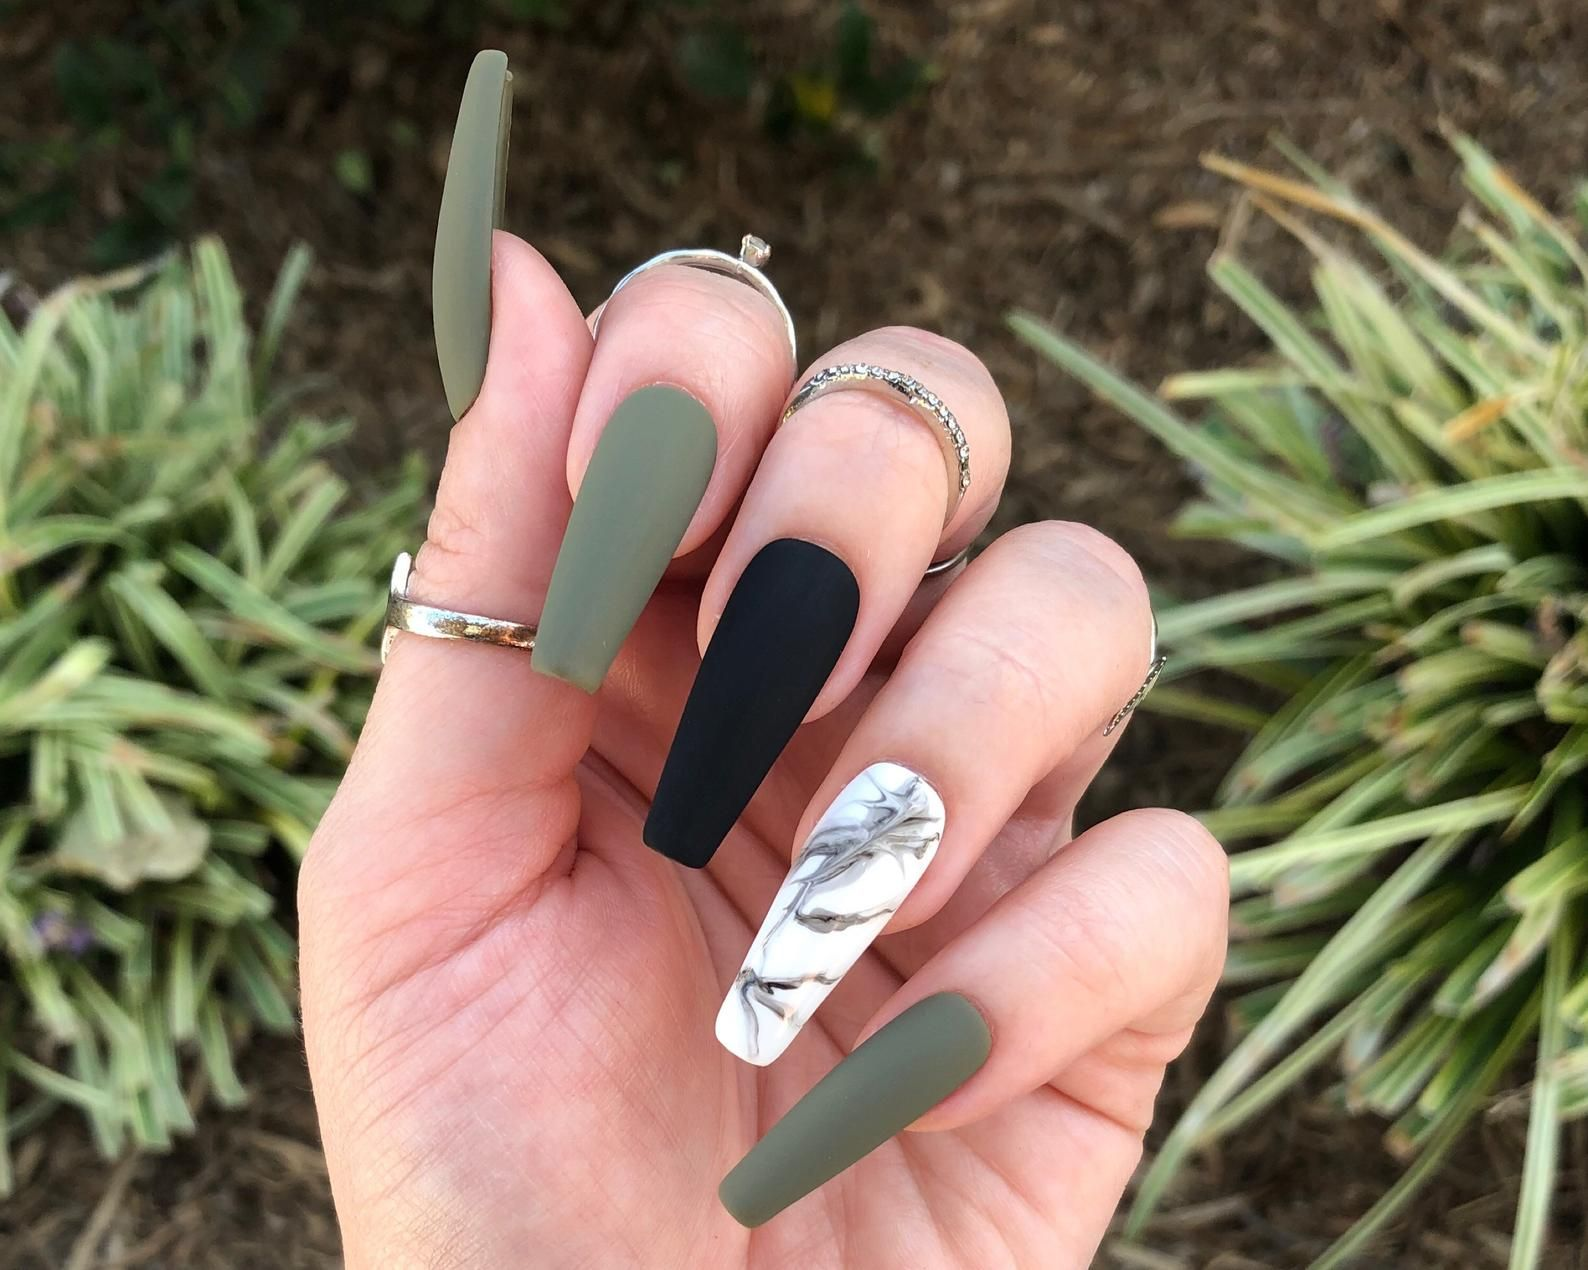 Hunter Green Marble Print Press On Nails Choose Your Shape Reusable Coffin Nails Stiletto Nails Fake Nails Glue On Nails In 2020 Fall Acrylic Nails Glue On Nails Fake Nails